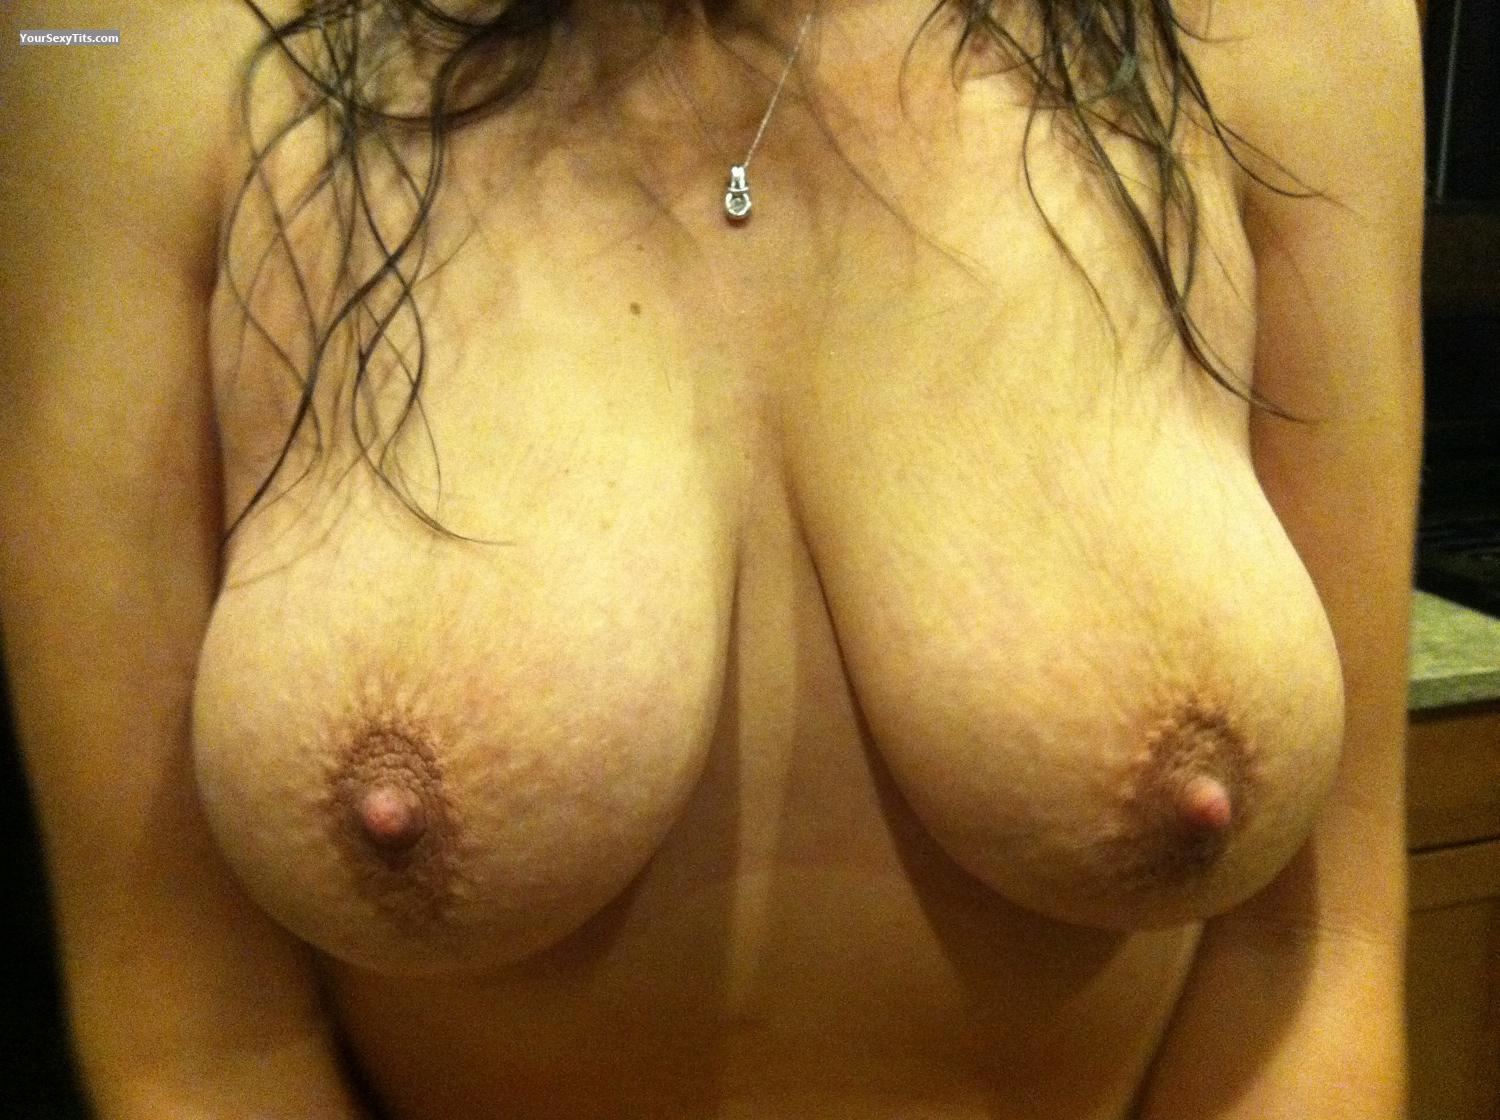 Medium Tits Sweettitties75